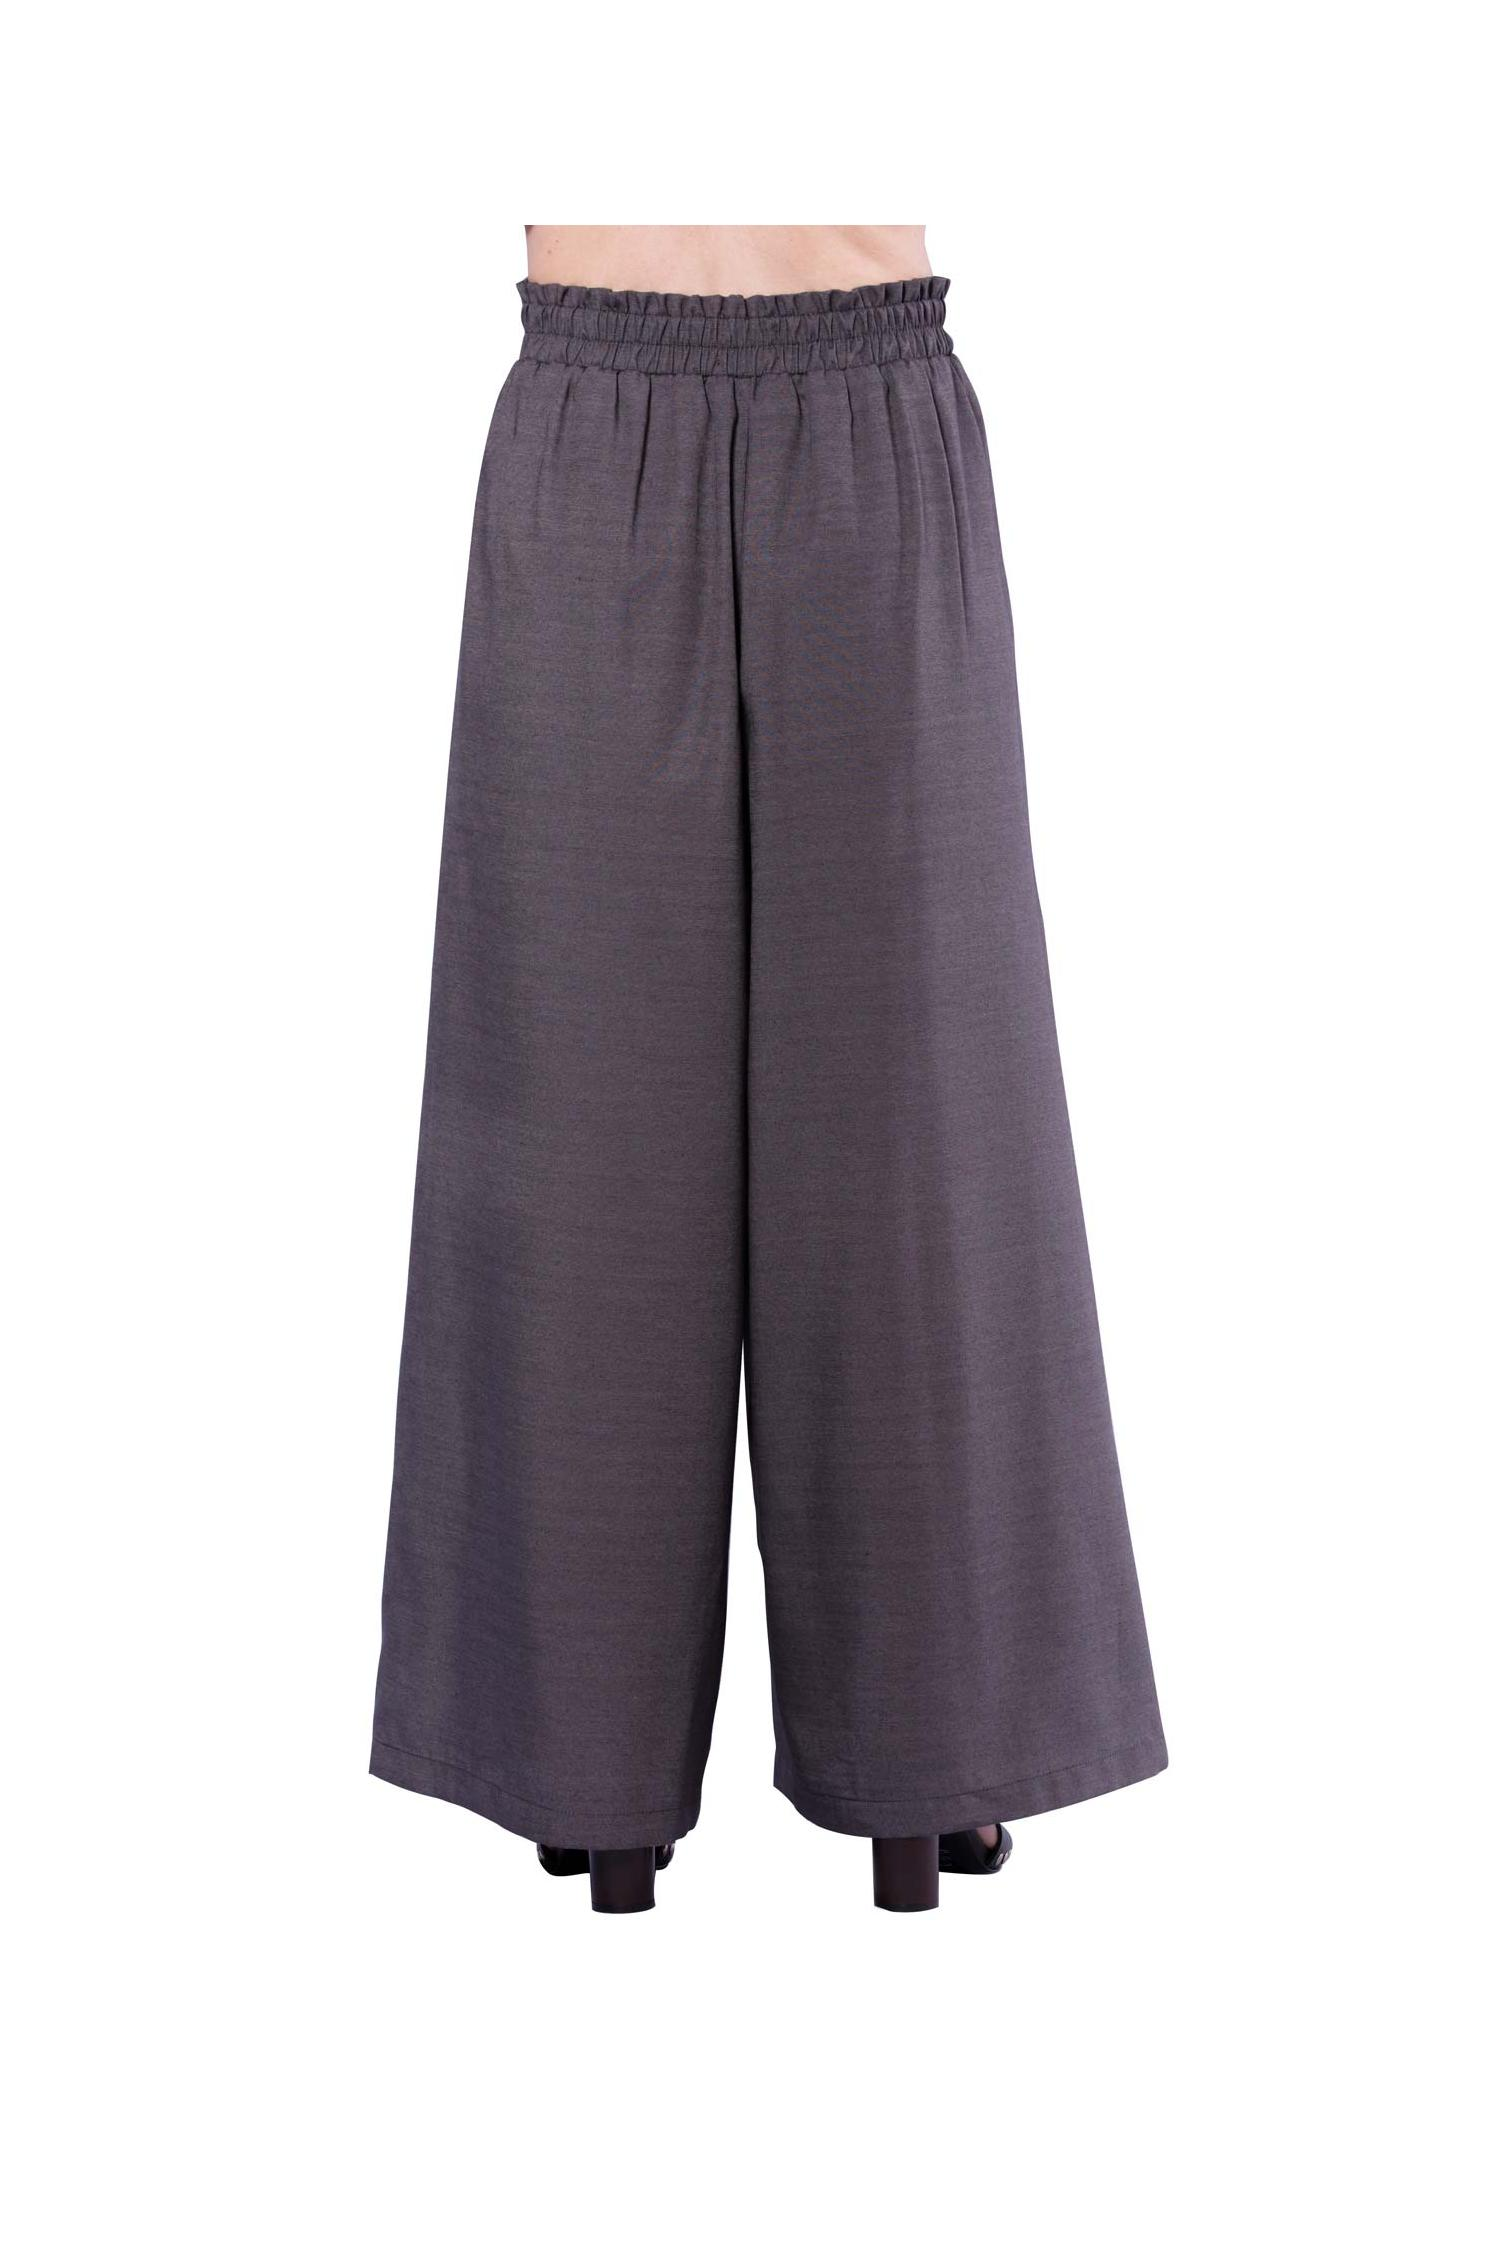 Drawstring pant with front slits